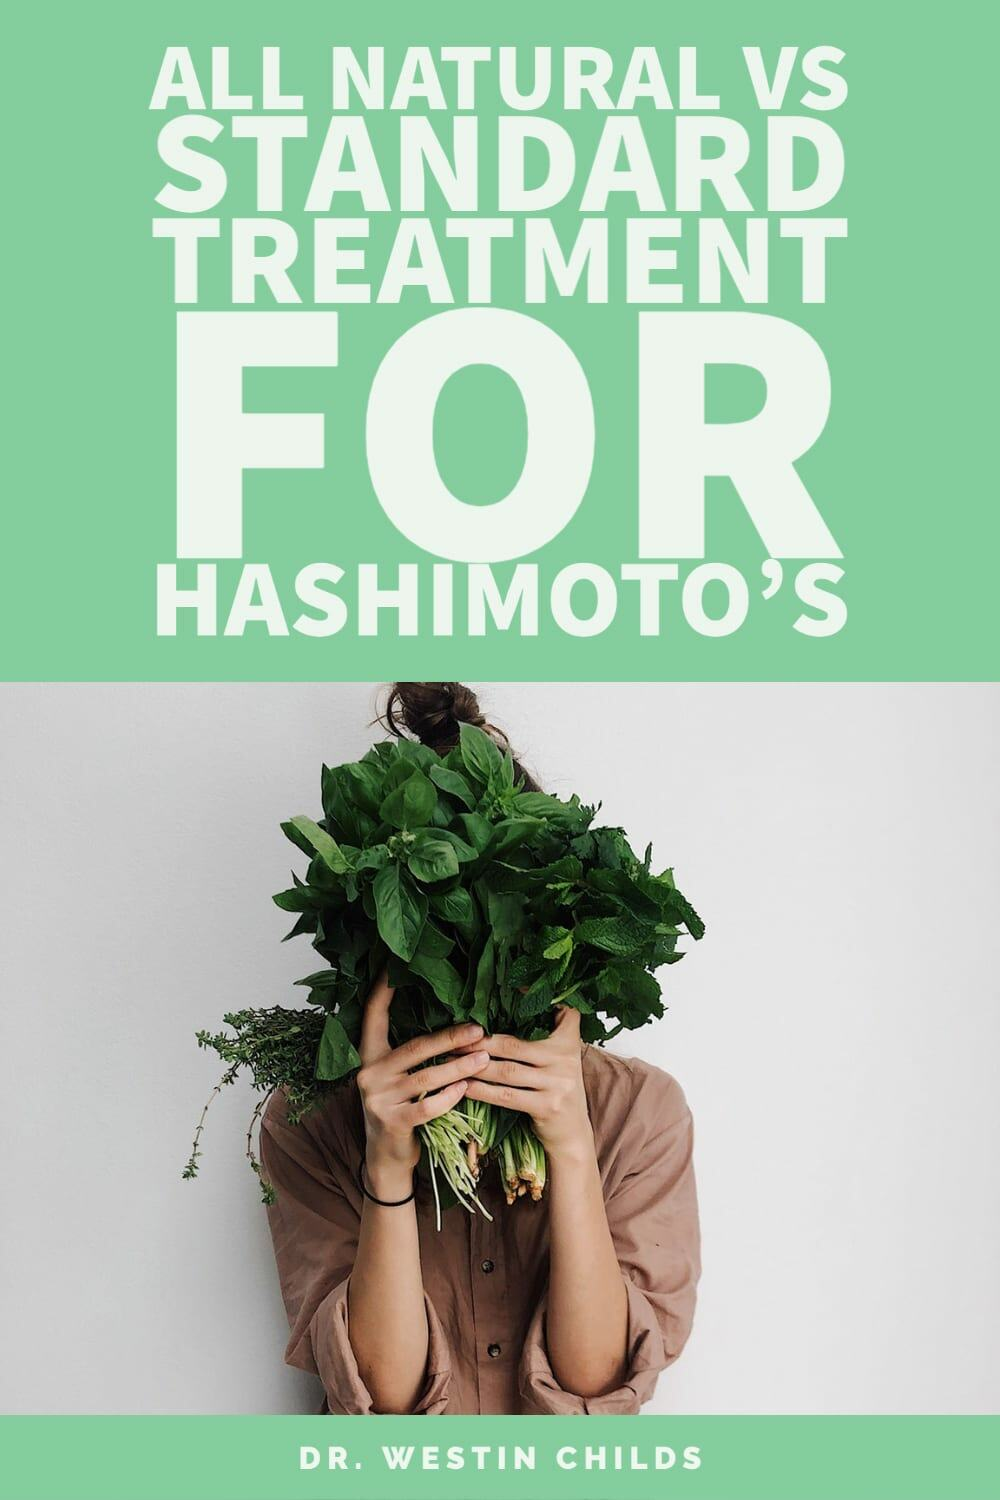 all natural vs standard treatment for hashimoto's